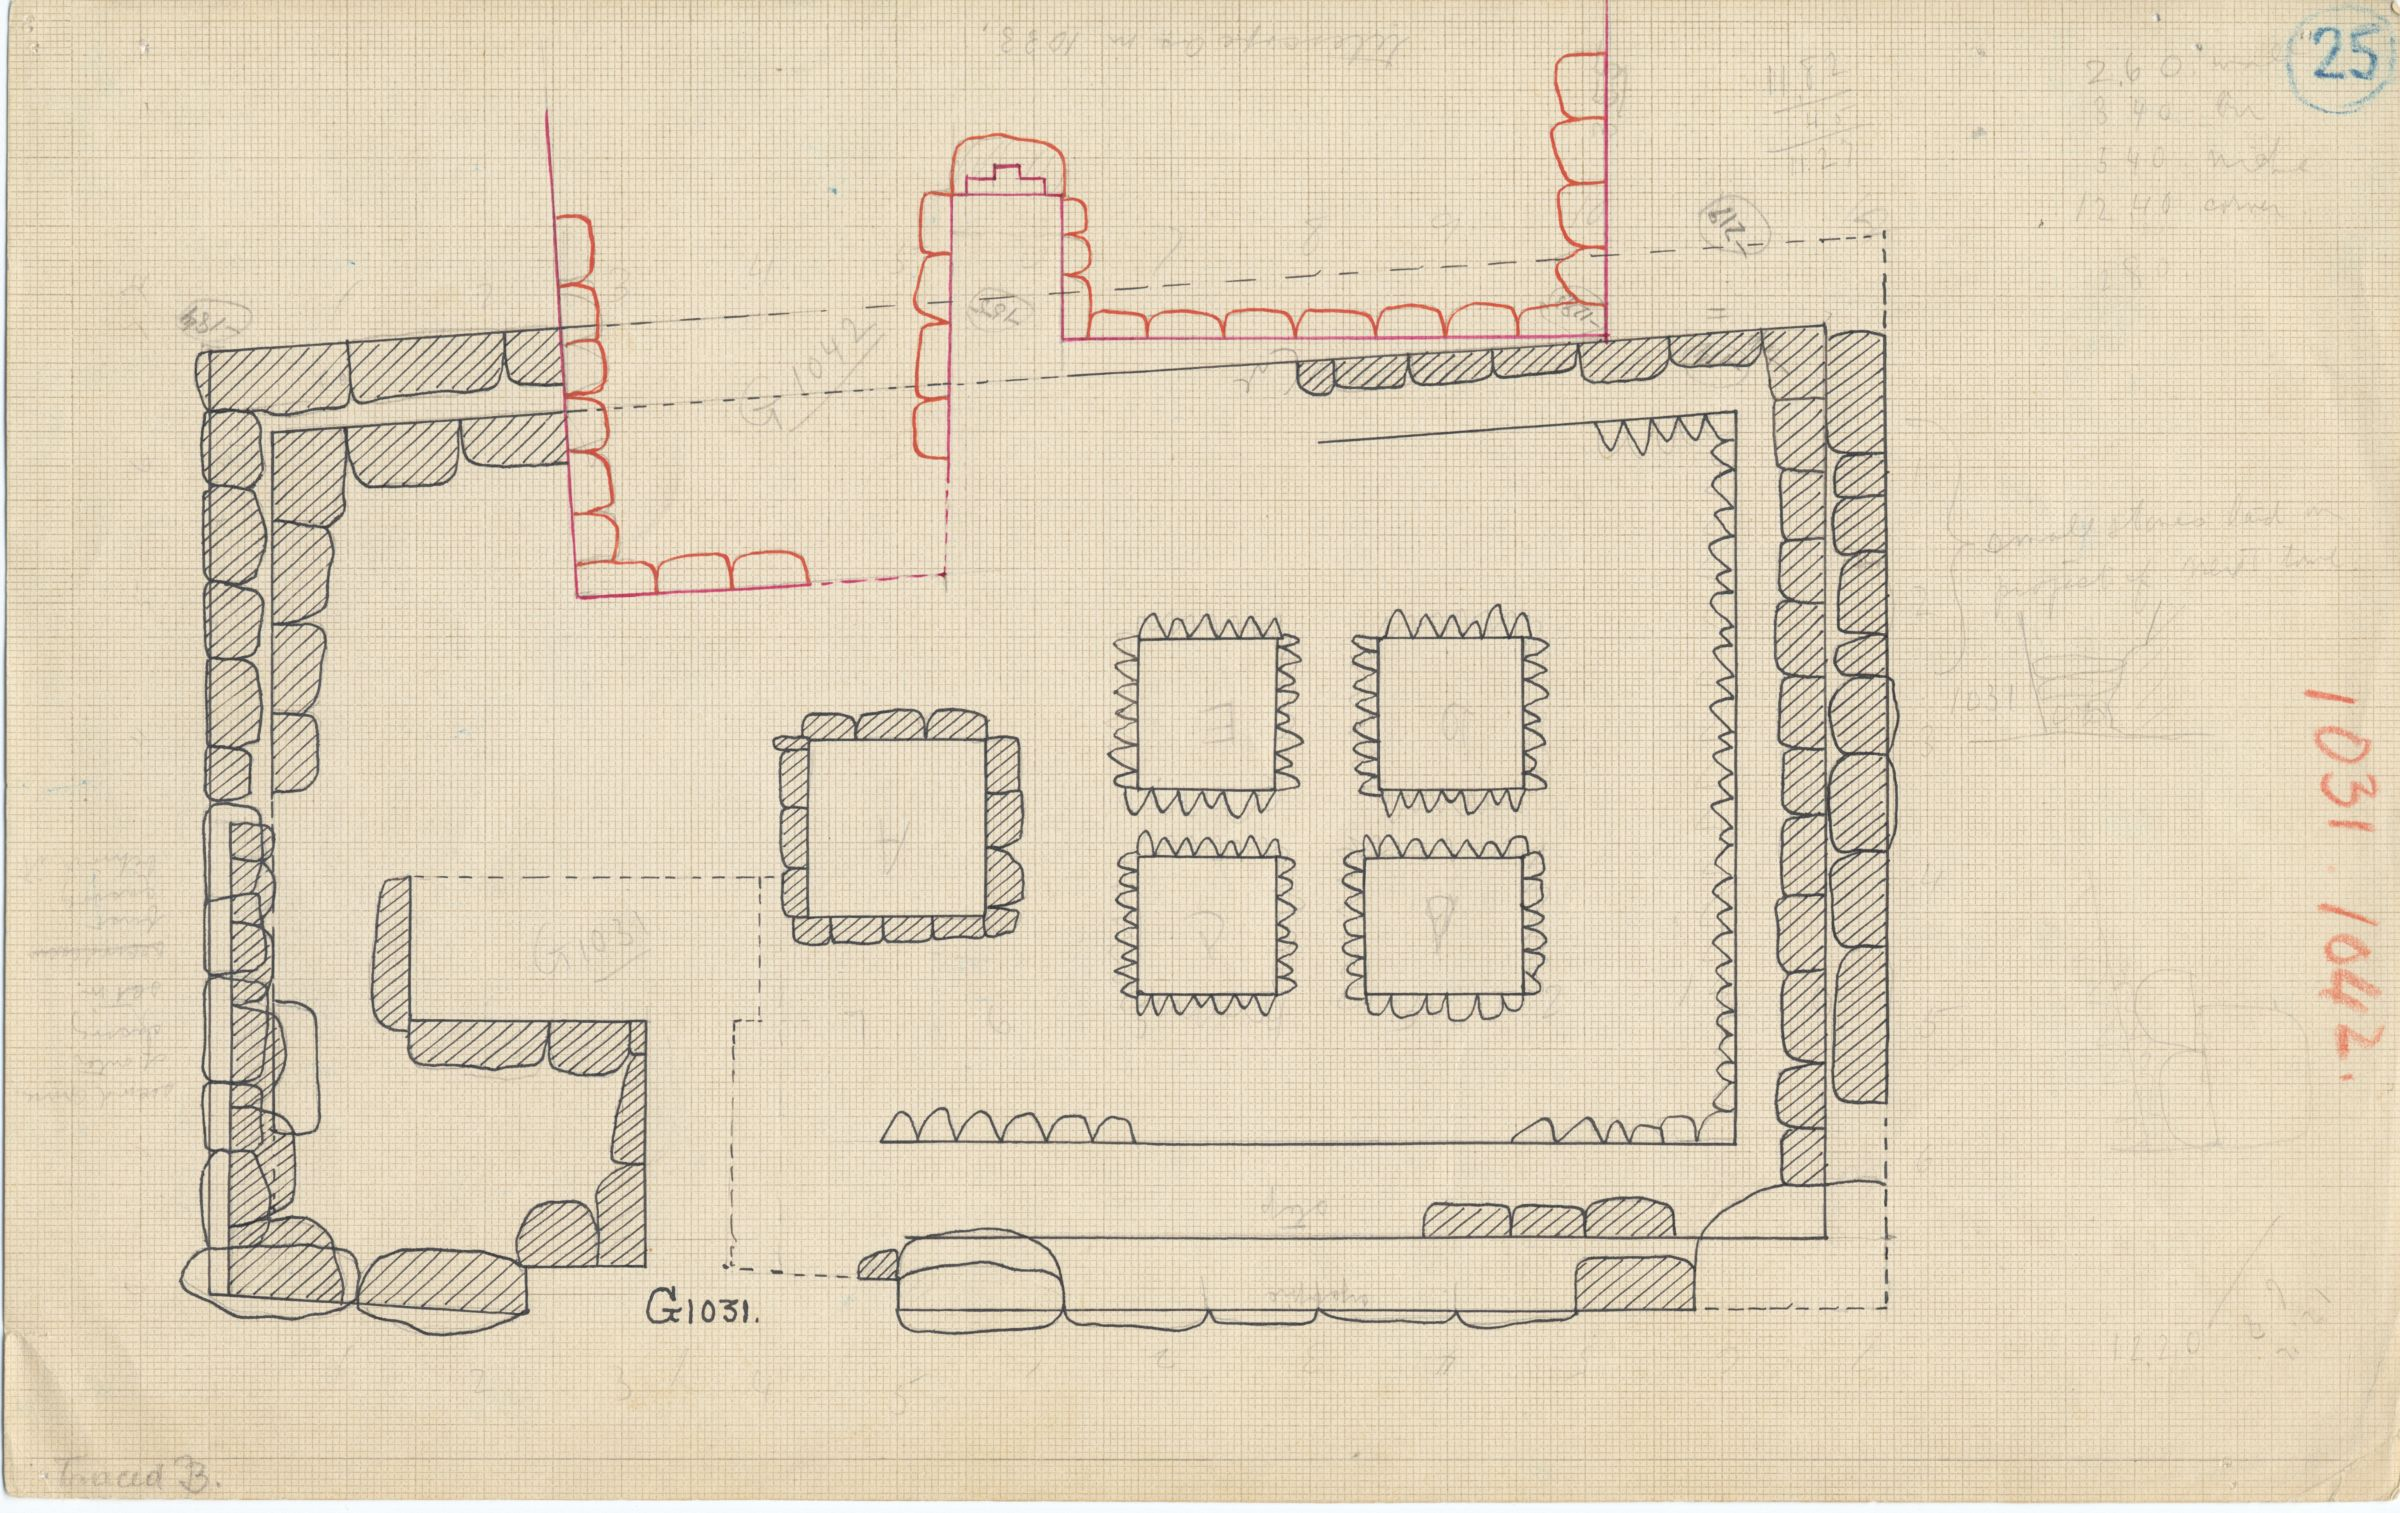 Maps and plans: Plan of G 1031, with position of G 1042